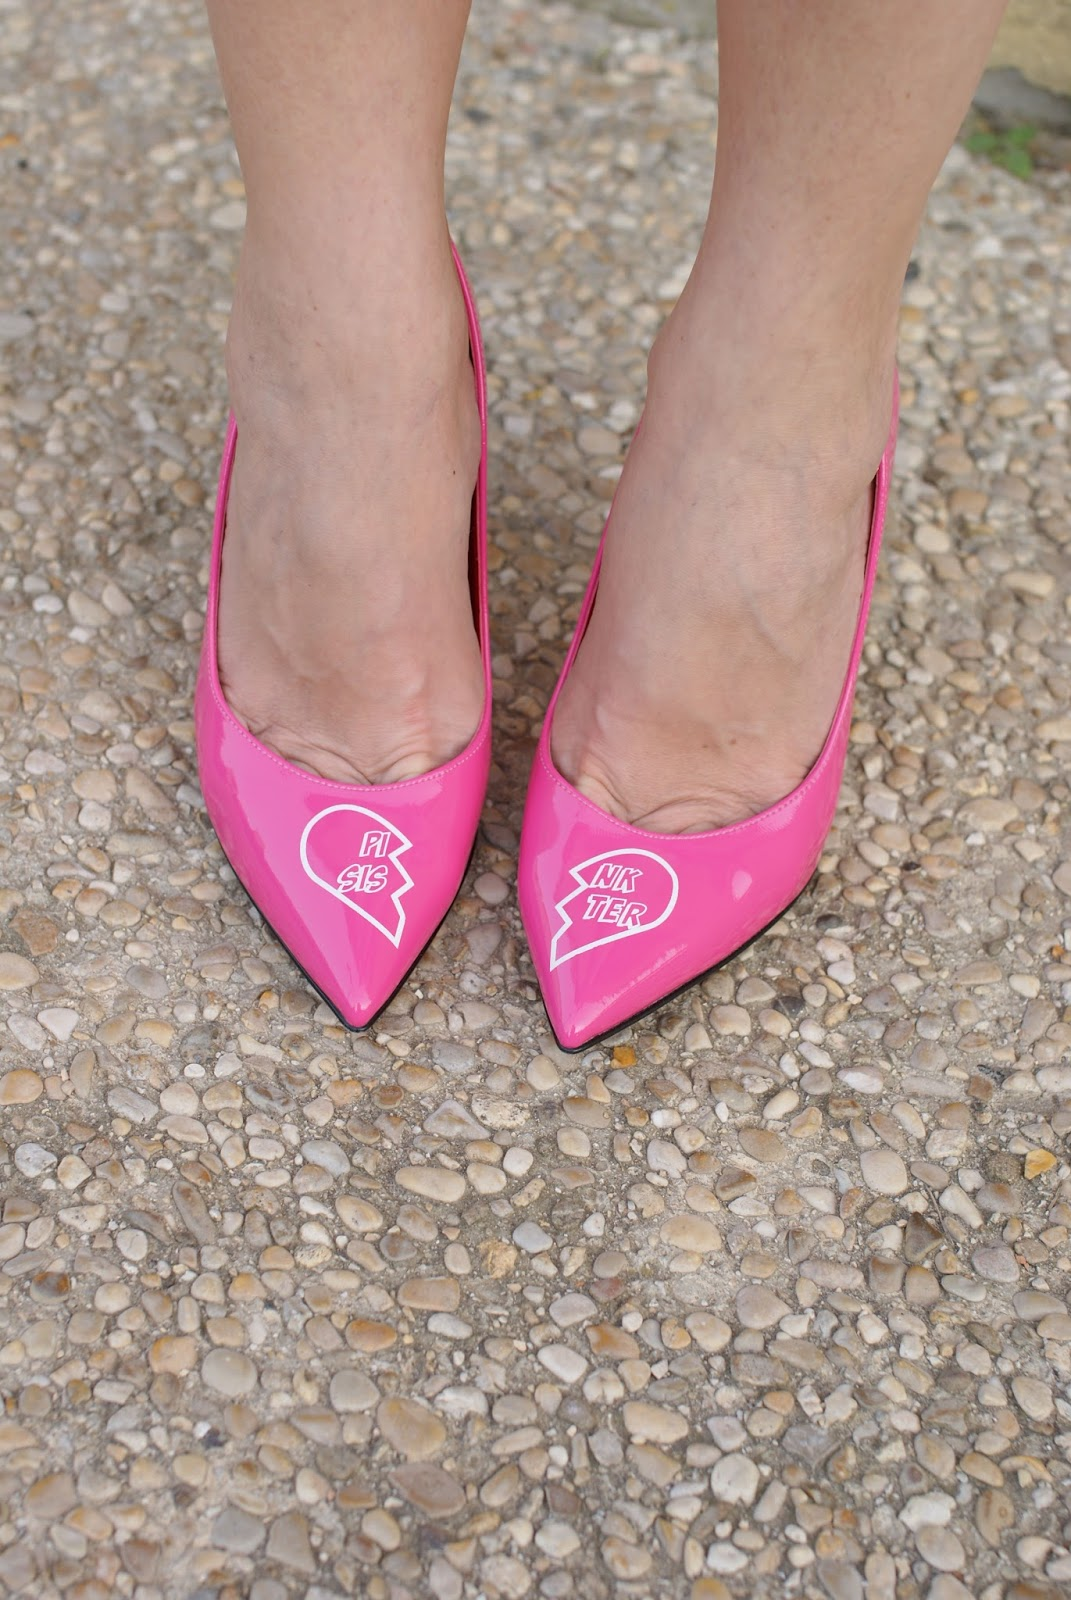 #StayMercury decollete pumps Pink Sister rosa su Morablu.it, su Fashion and Cookies fashion blog, fashion blogger